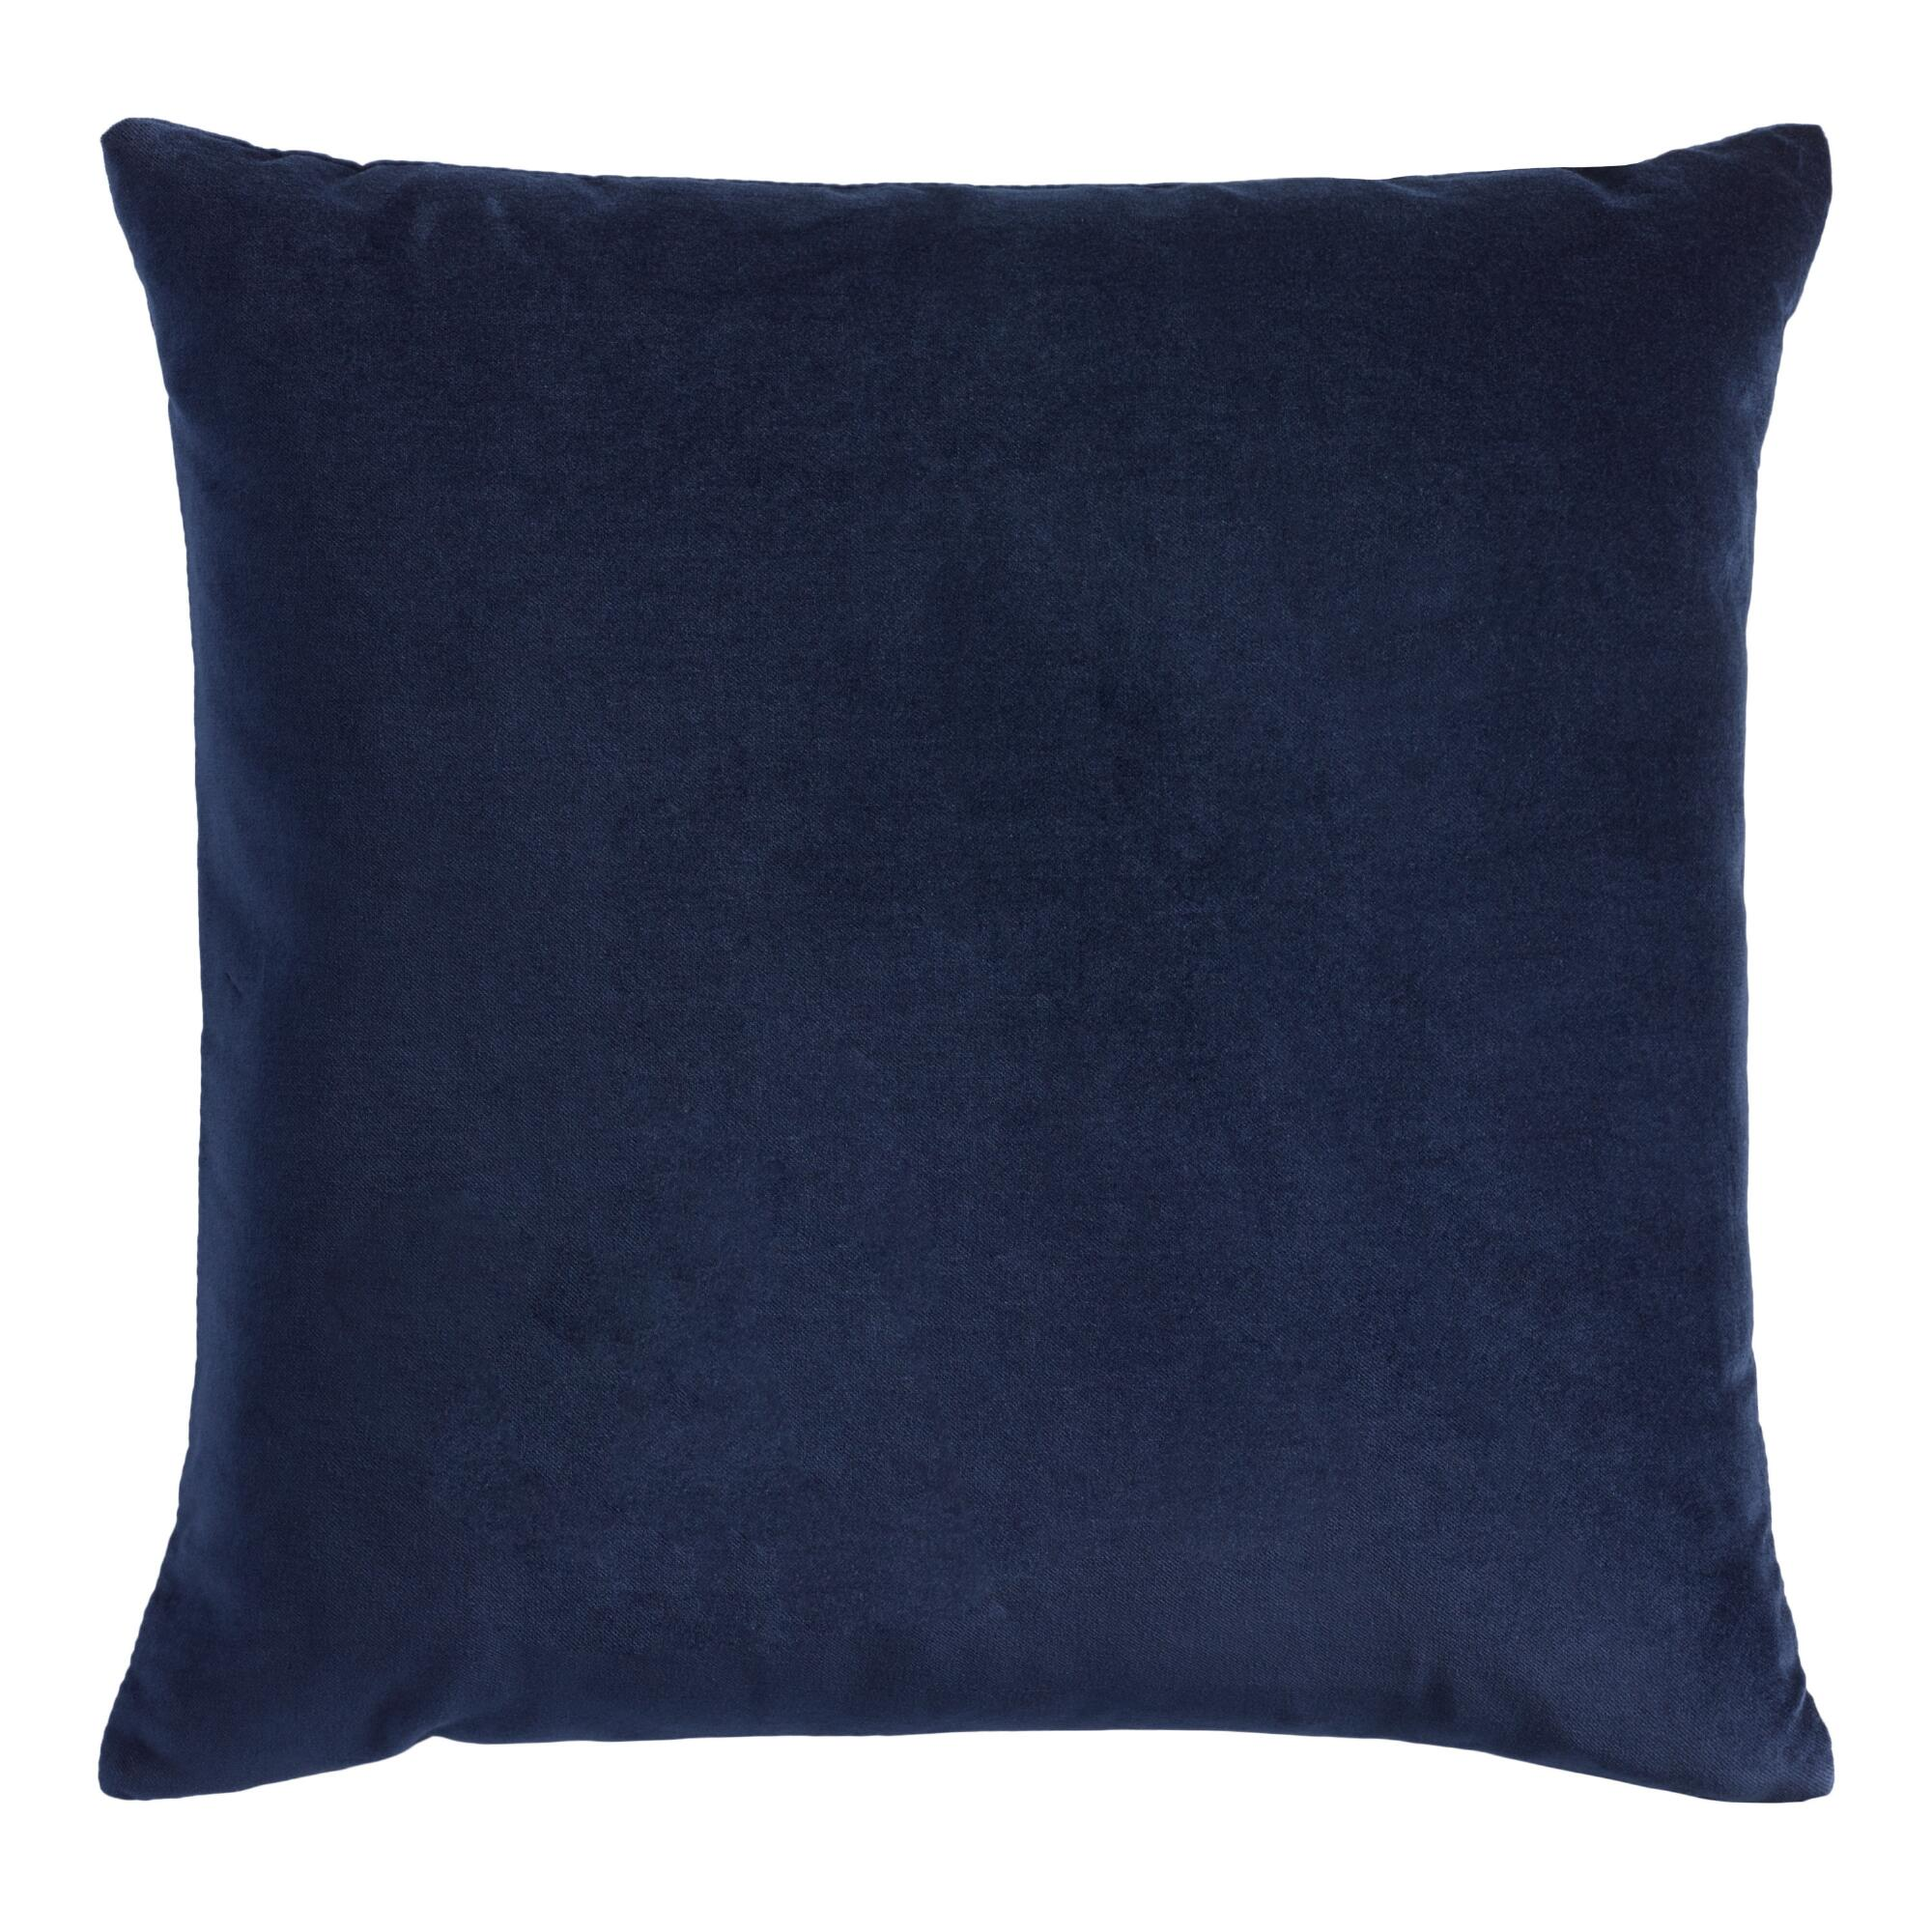 Navy Blue Velvet Throw Pillow | World Market